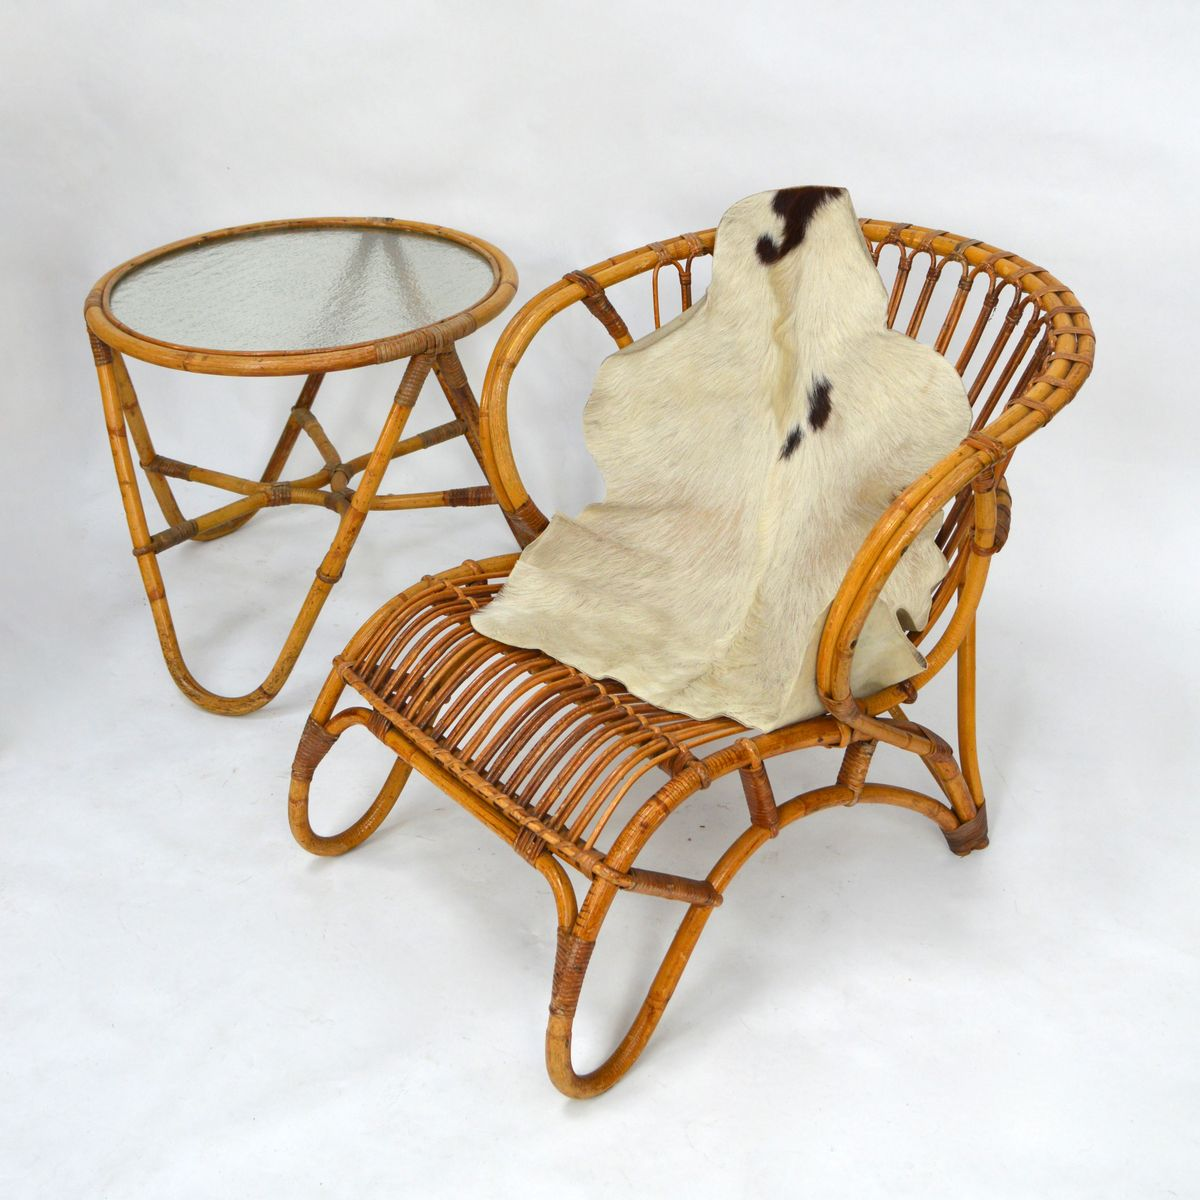 rattan garden lounge set from roh noordwolde 1950s for sale at pamono. Black Bedroom Furniture Sets. Home Design Ideas